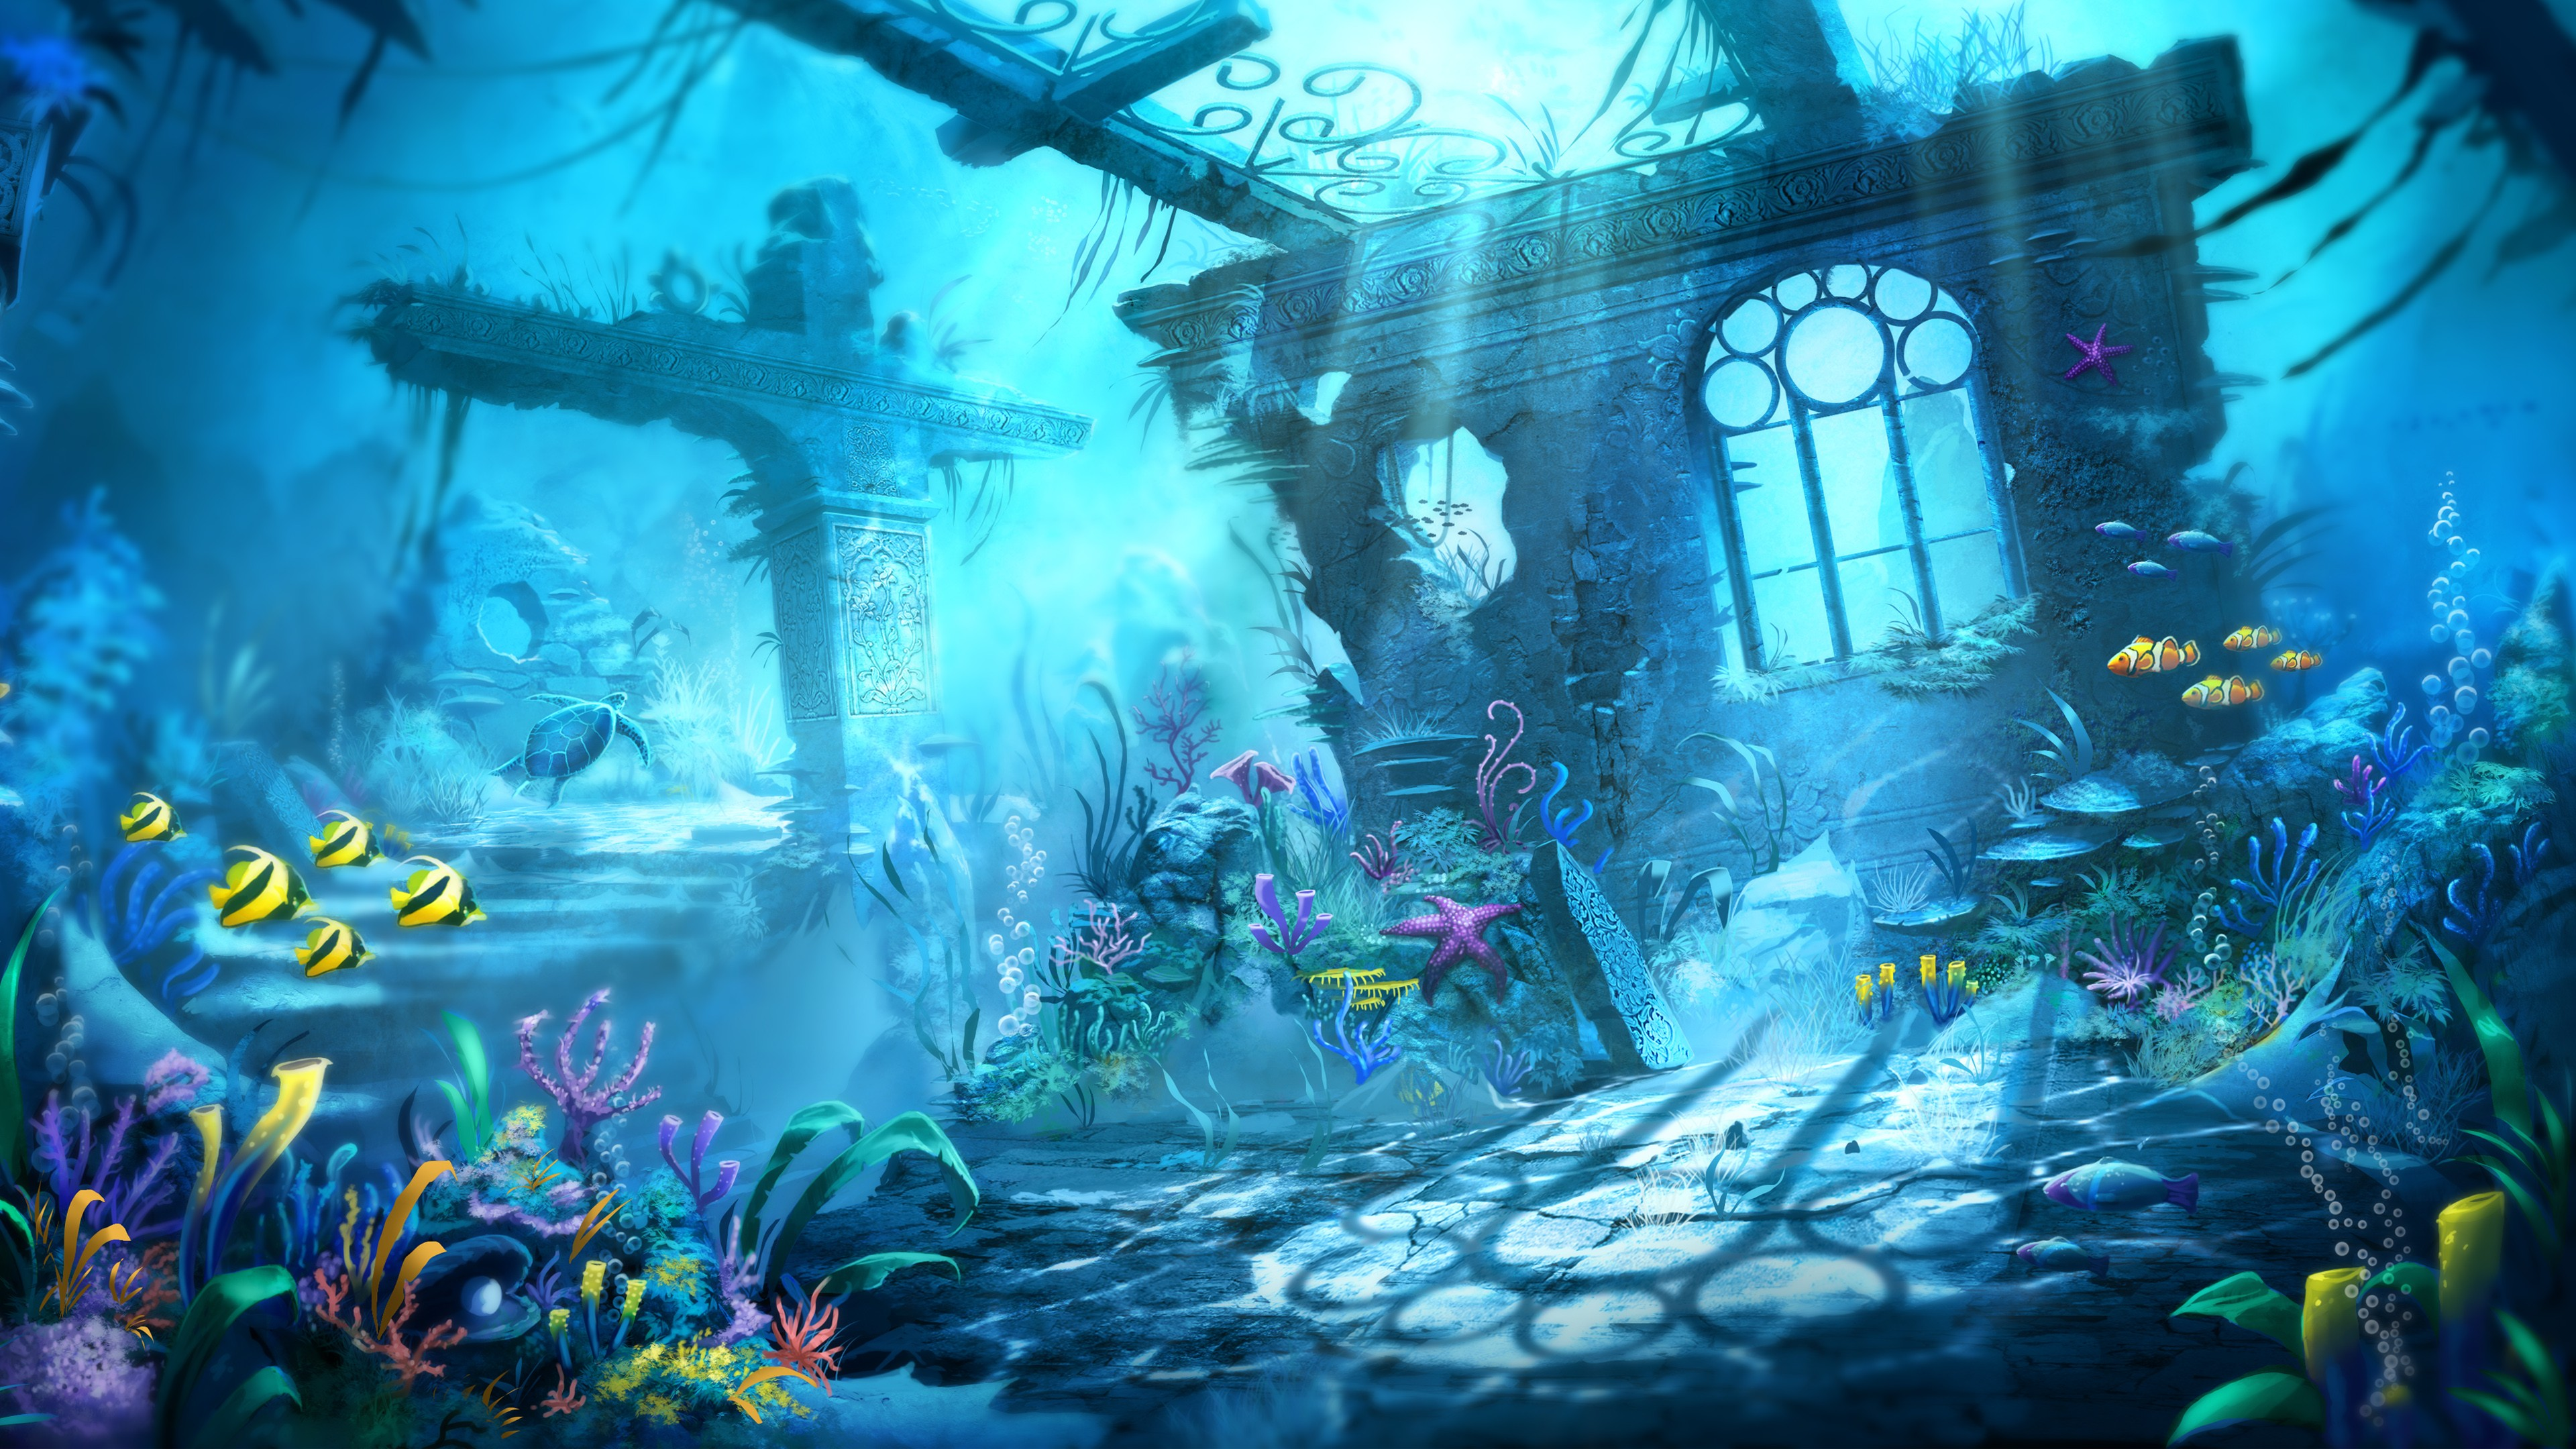 Gravity Falls Landscapes Wallpaper Trine Underwater Scene Wallpapers Hd Wallpapers Id 13876